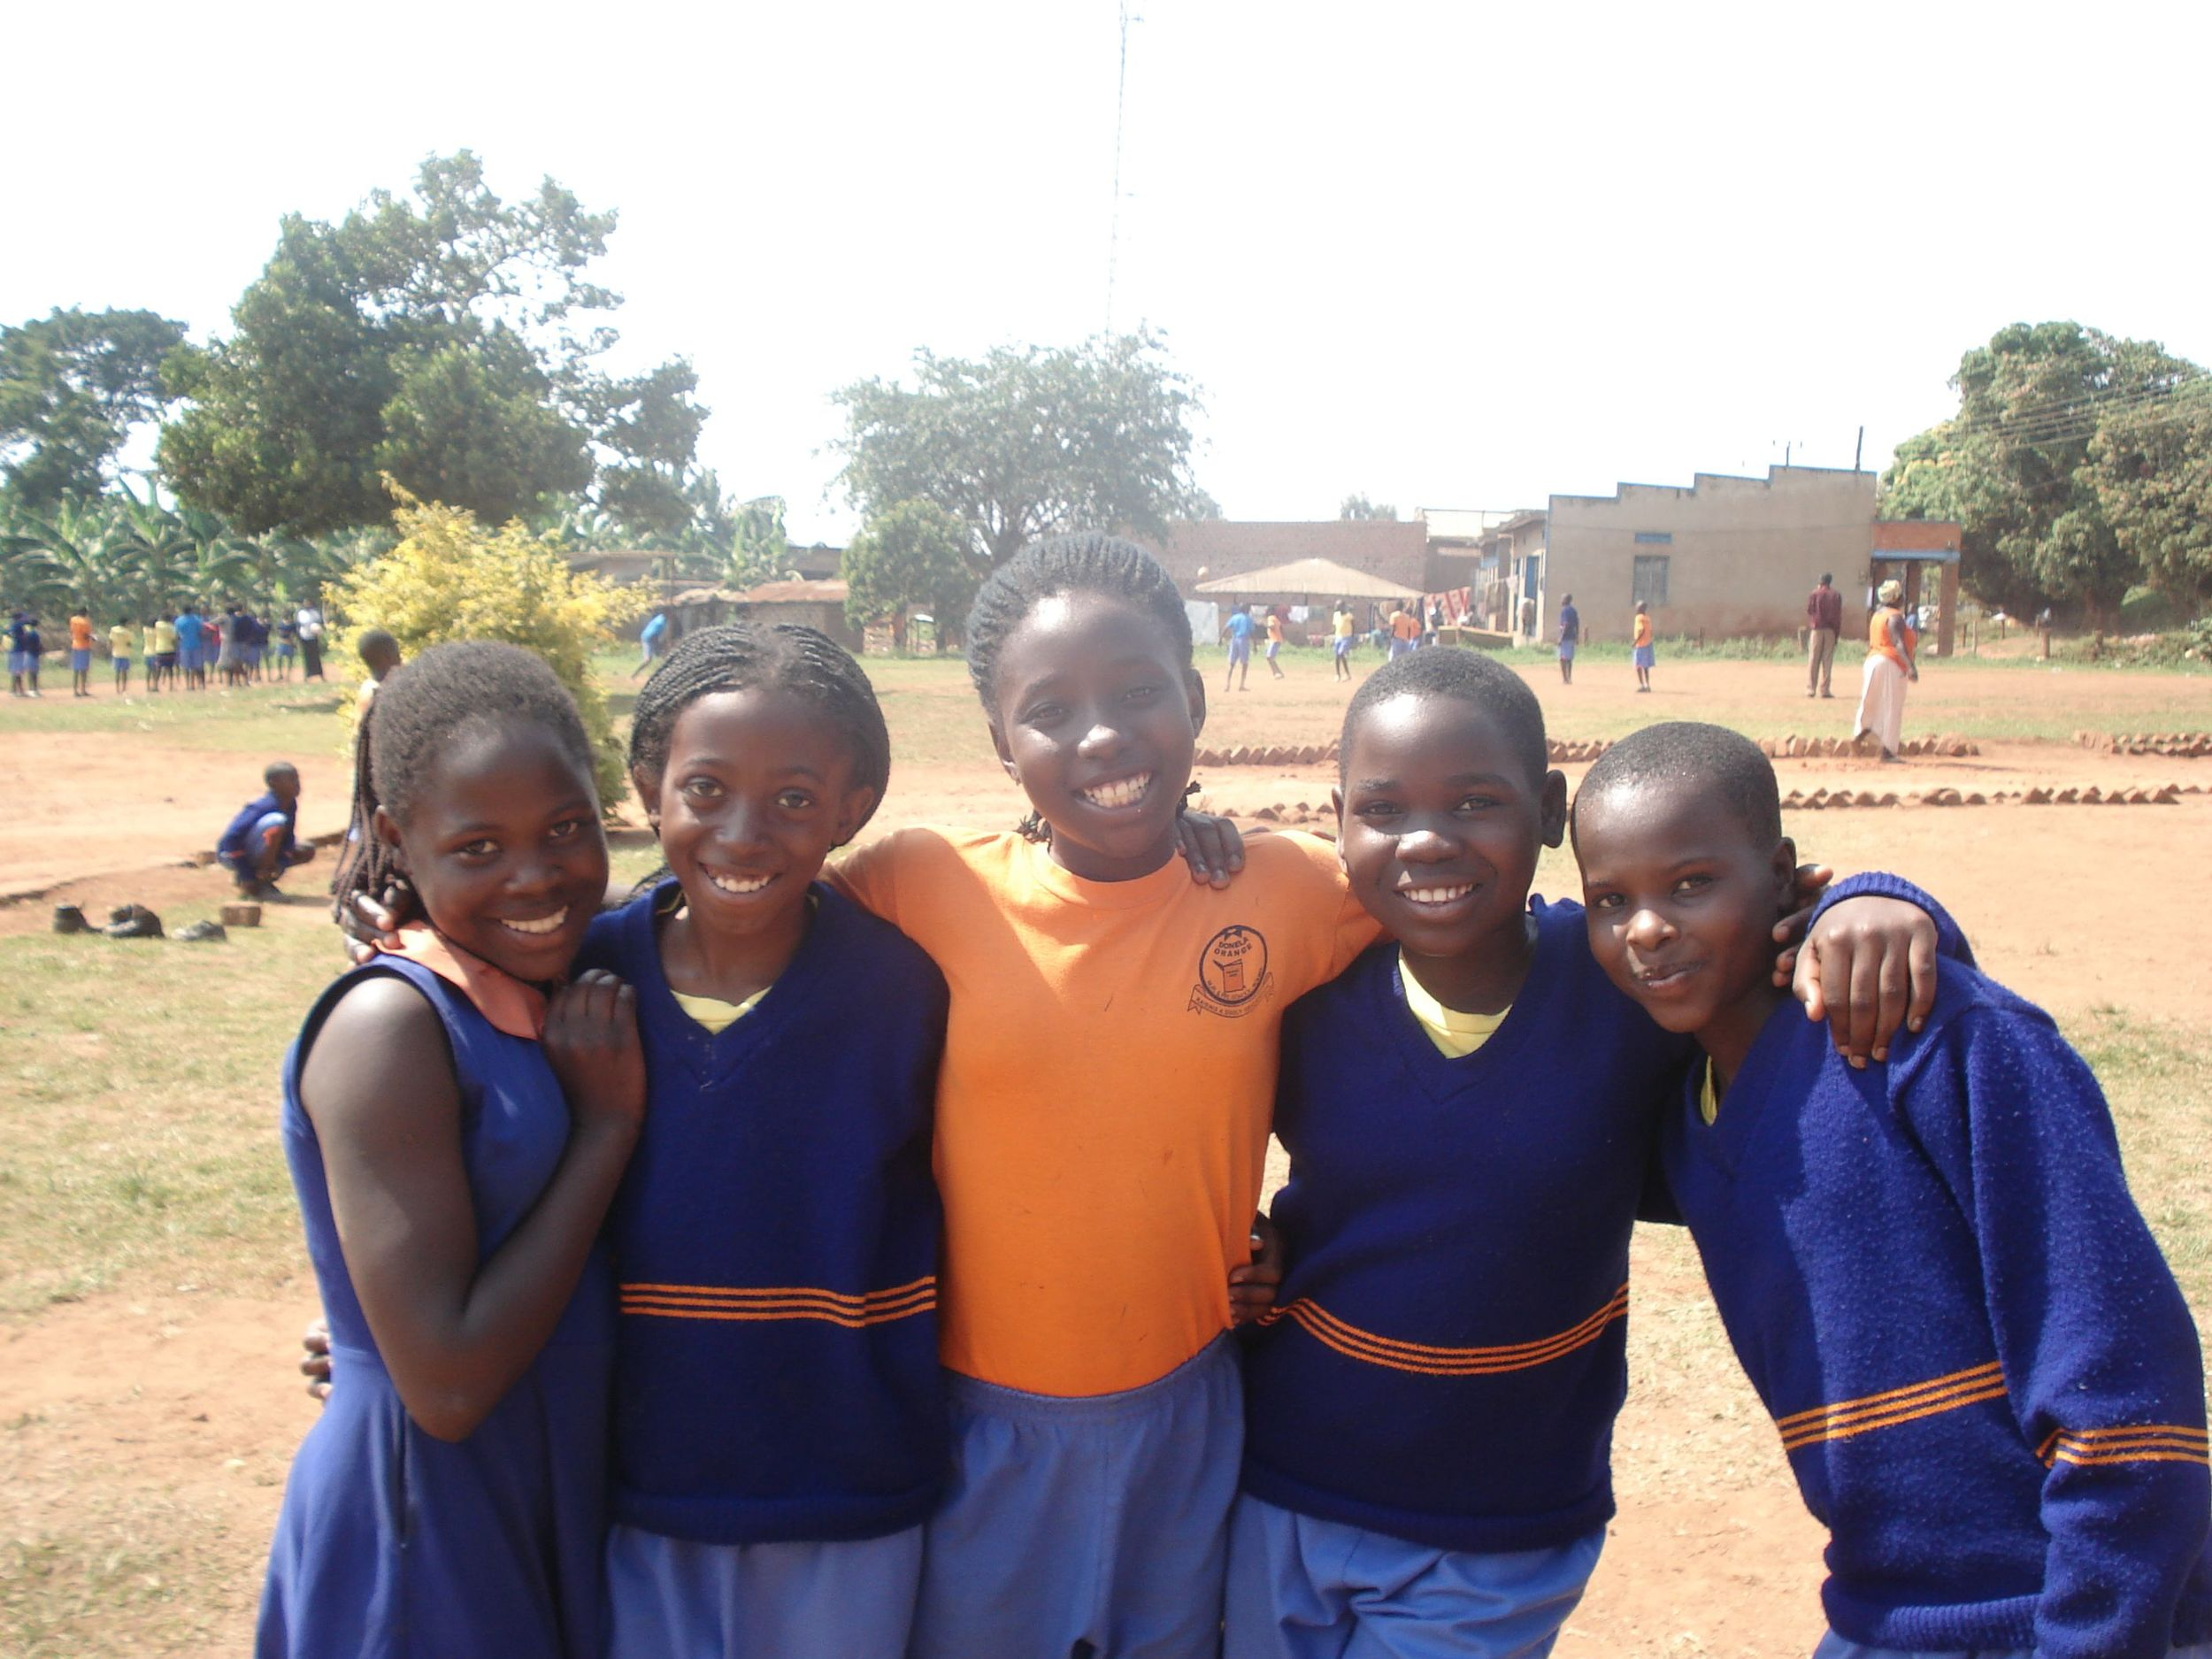 With quality education, these young ladies can begin to transform their community.